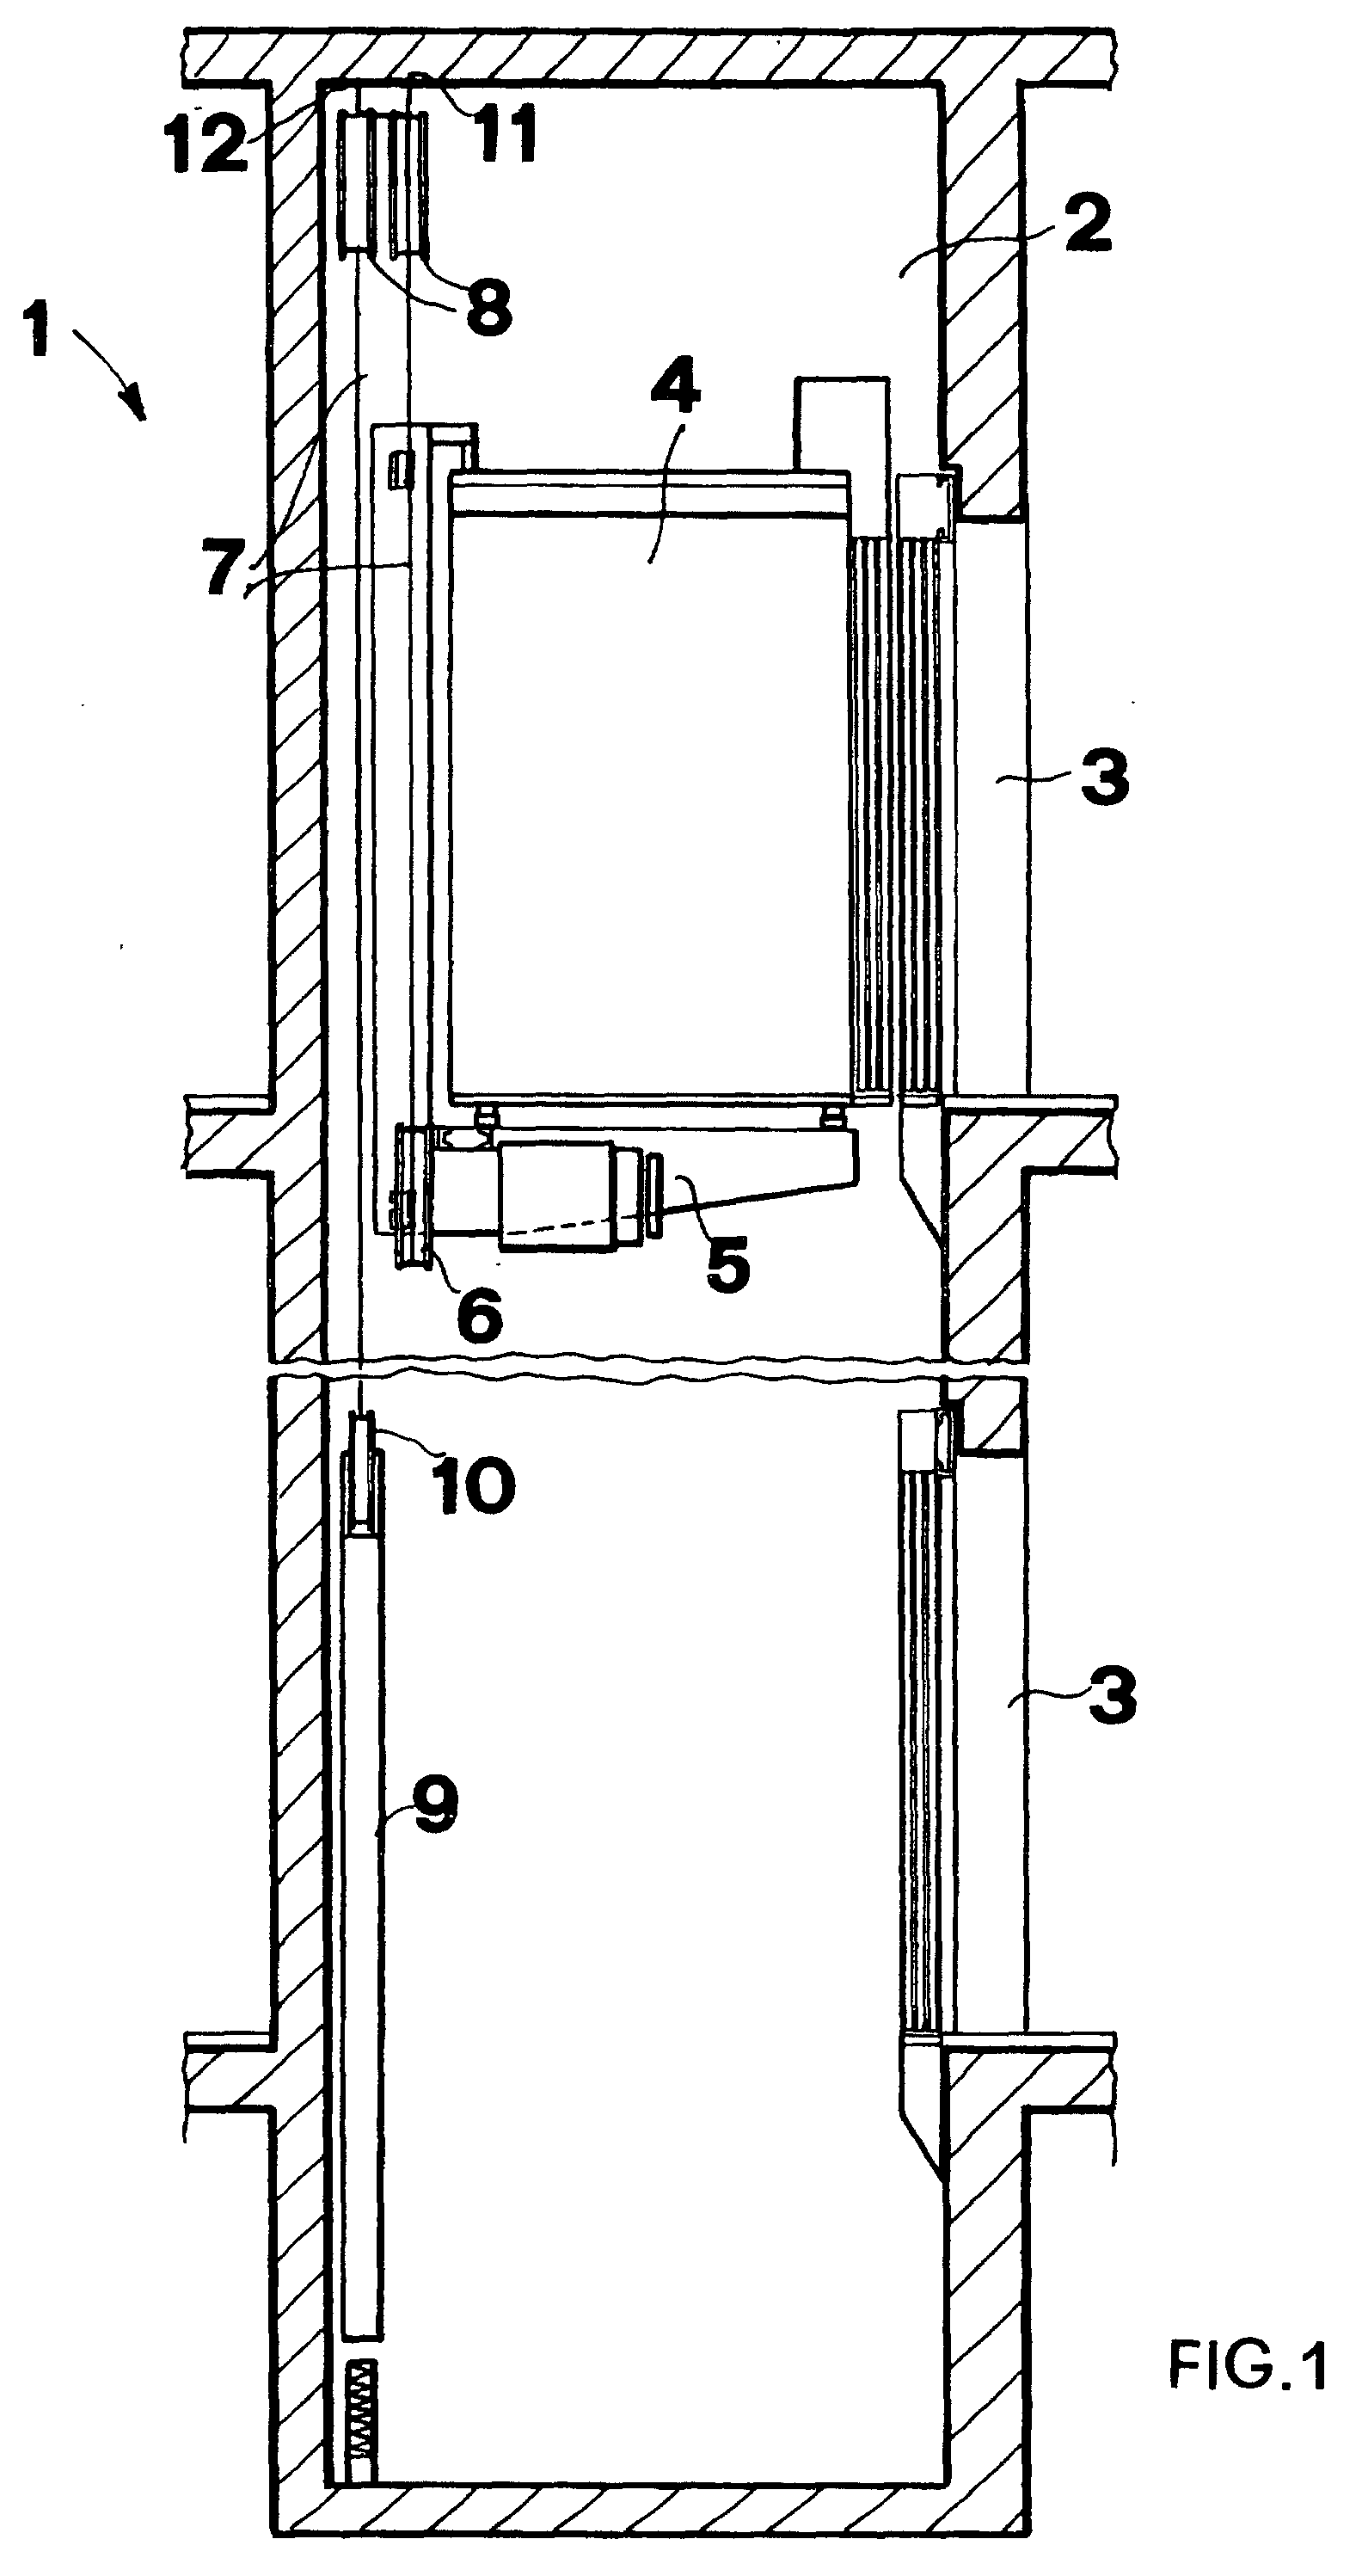 Pre Planning A Elevator Shaft Way Into Your Build besides Understanding Electric Motor Energy Efficiency Regulations additionally Zpk5  mercial Ac  pressor as well Super Sleek Maxon Dcx 16s further Electrical Motors Hp Torque Rpm D 1503. on motor shaft size by frame